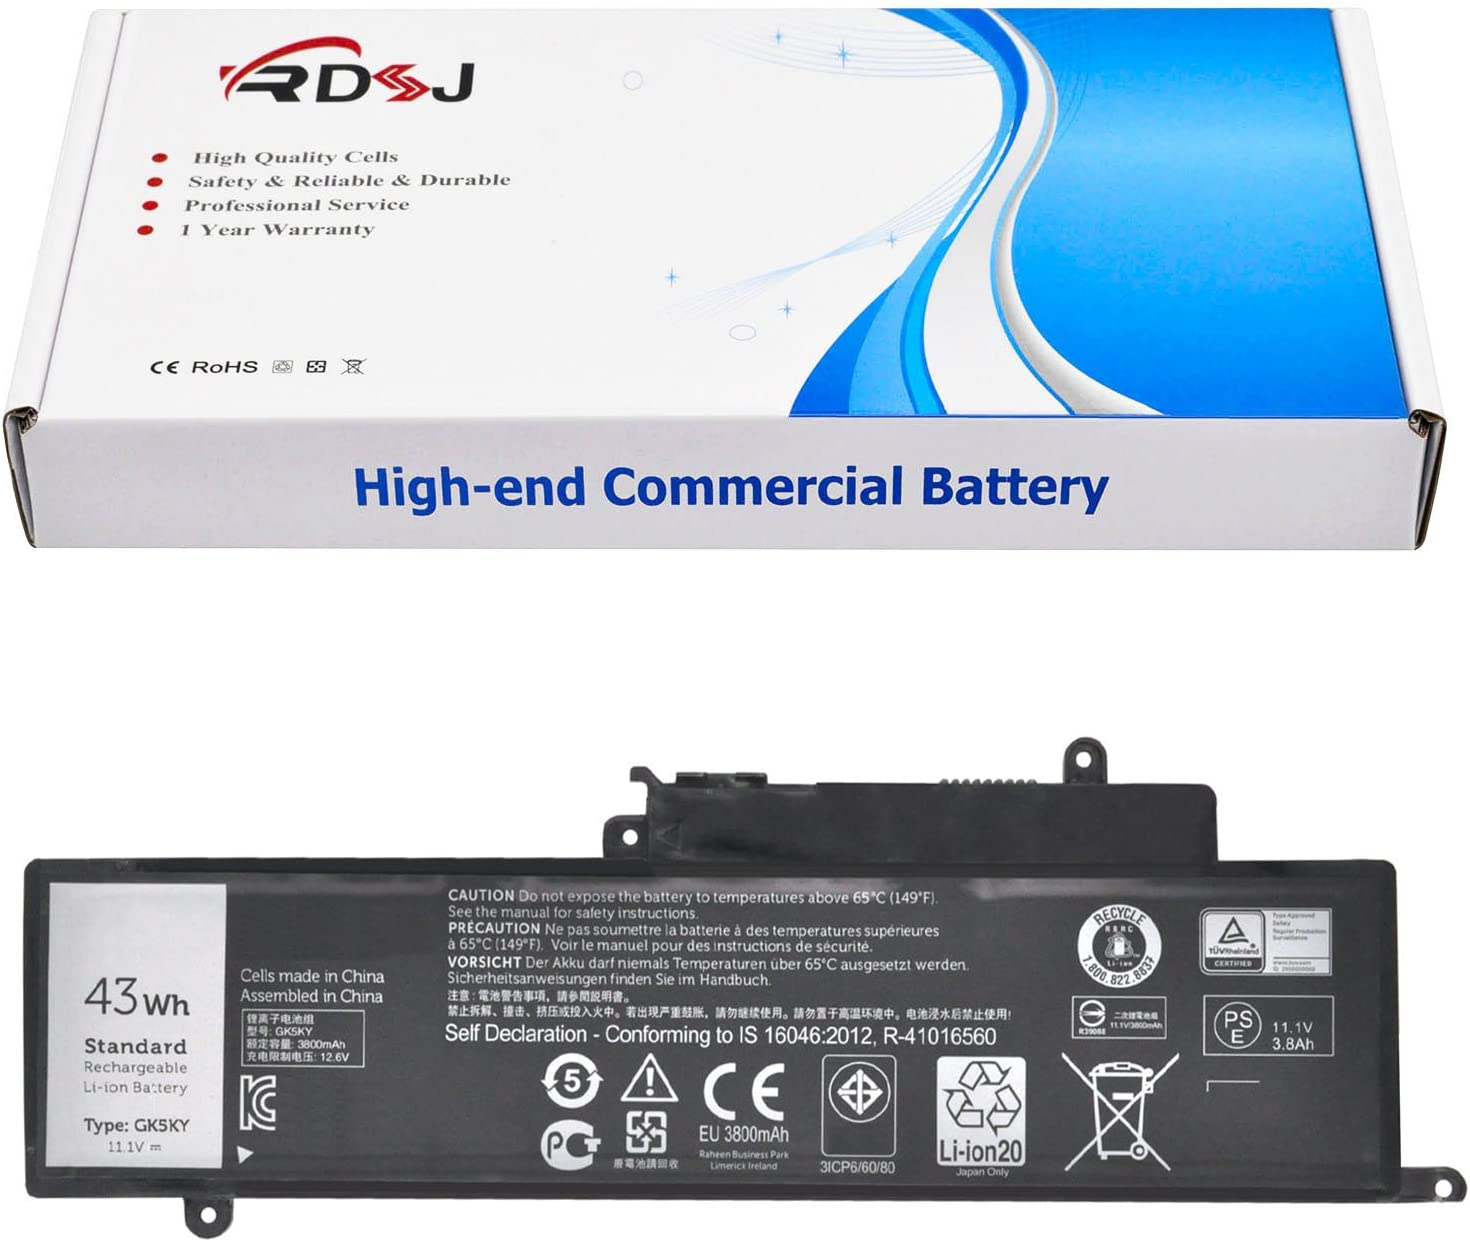 GK5KY 11.1V 43Wh Battery for Dell Inspiron 13 7347 13-7352 3147 3000 11-3152 Series 04K8YH 92NCT 092NCT 4K8YH P20T